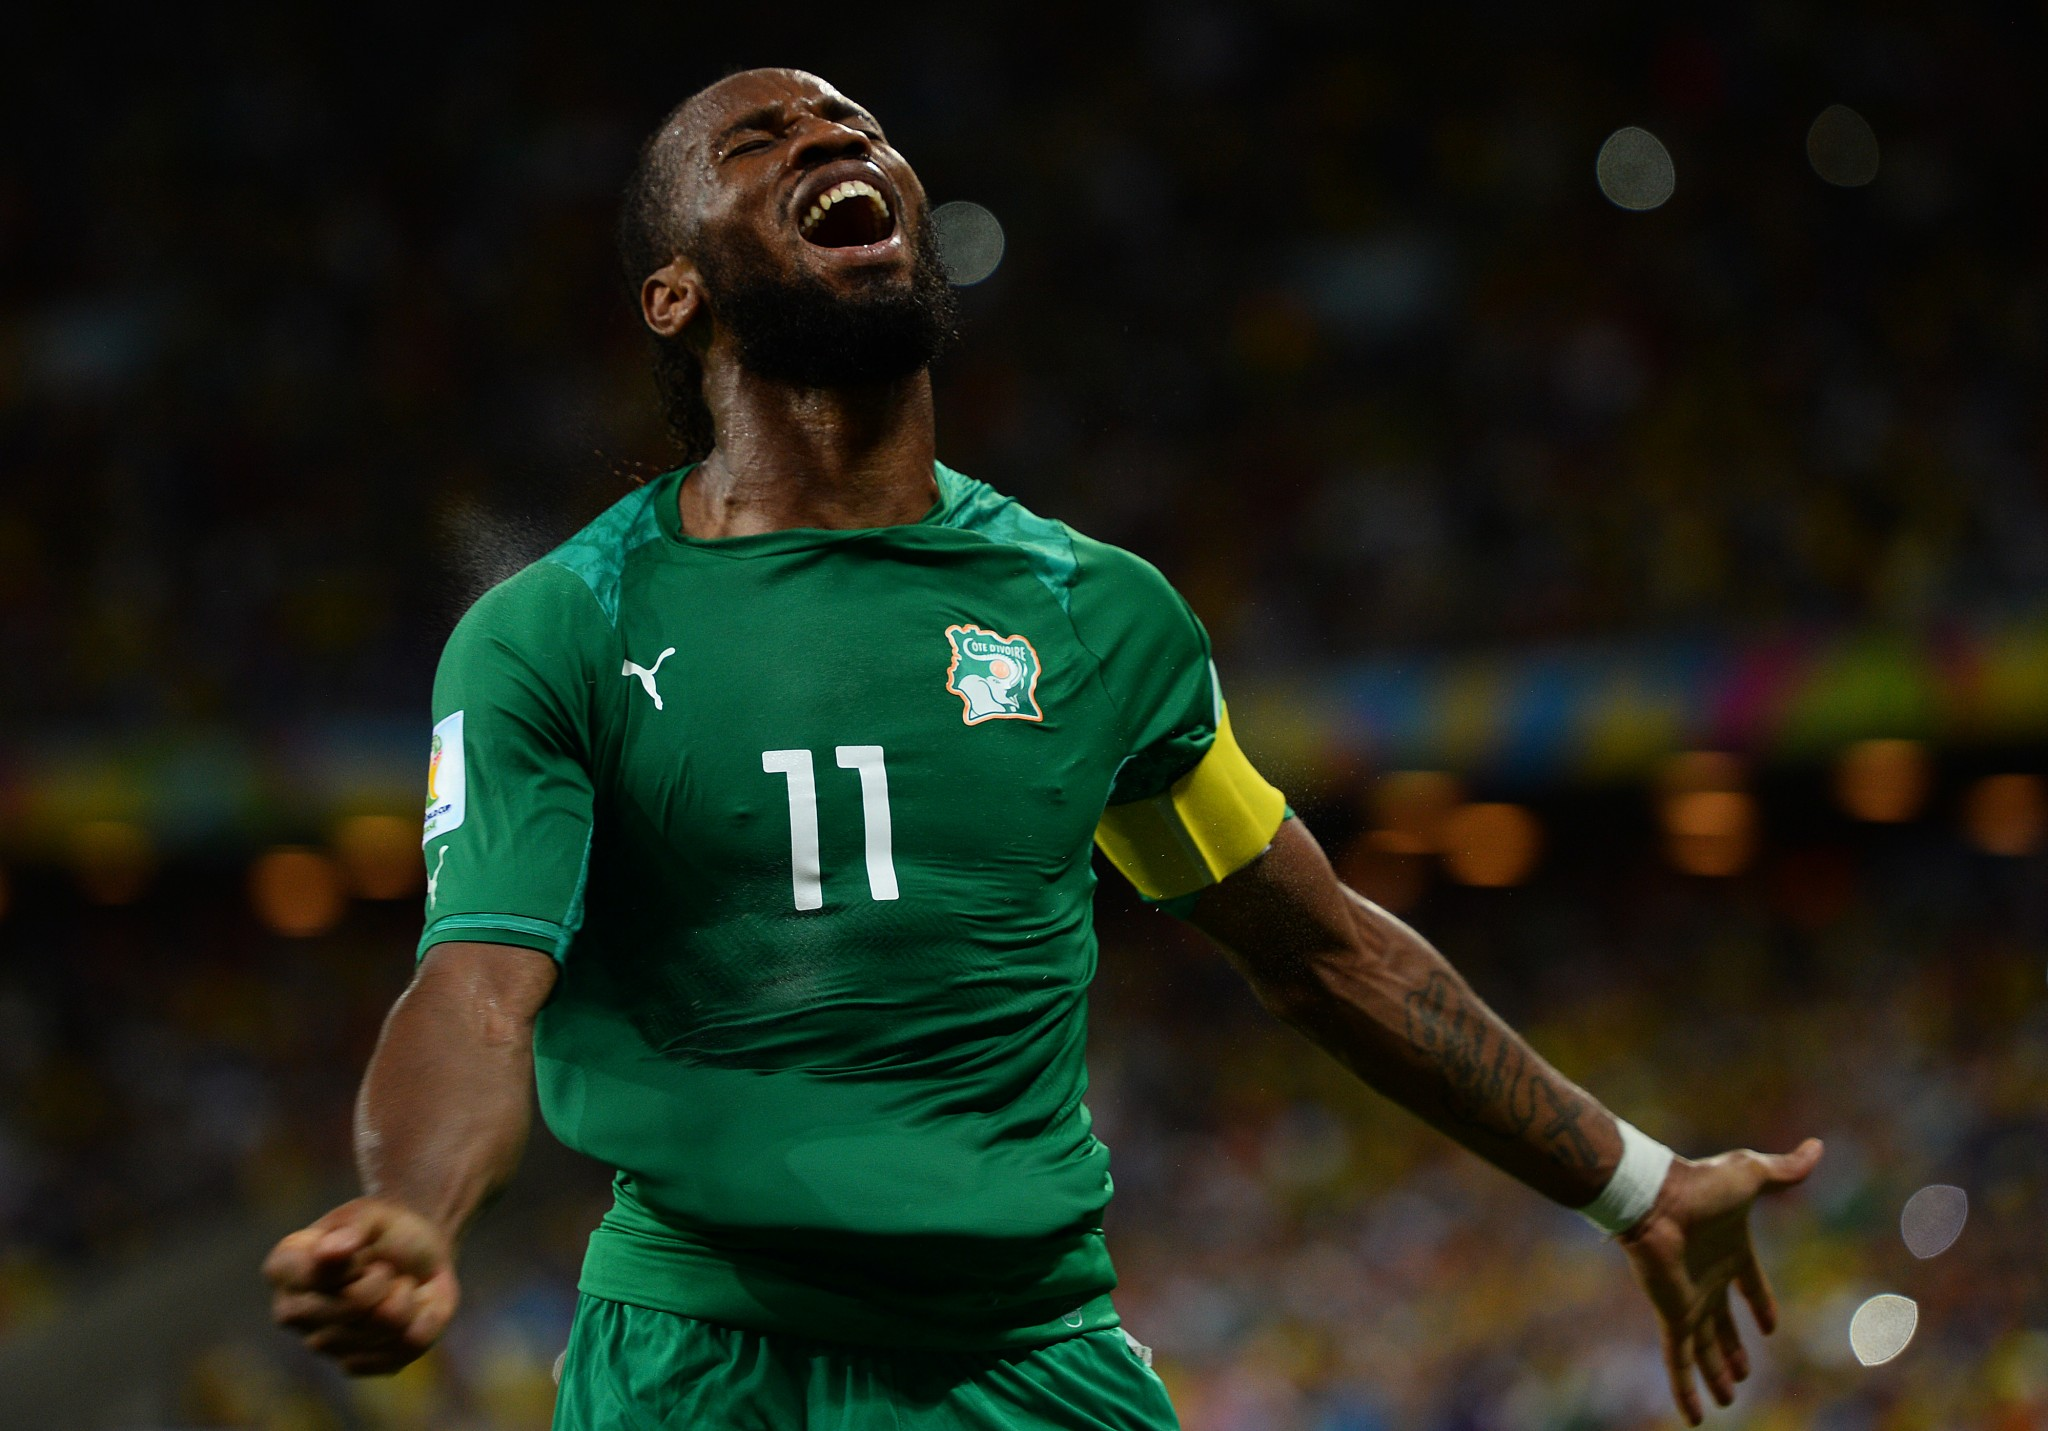 Didier Drogba playing for Ivory Coast